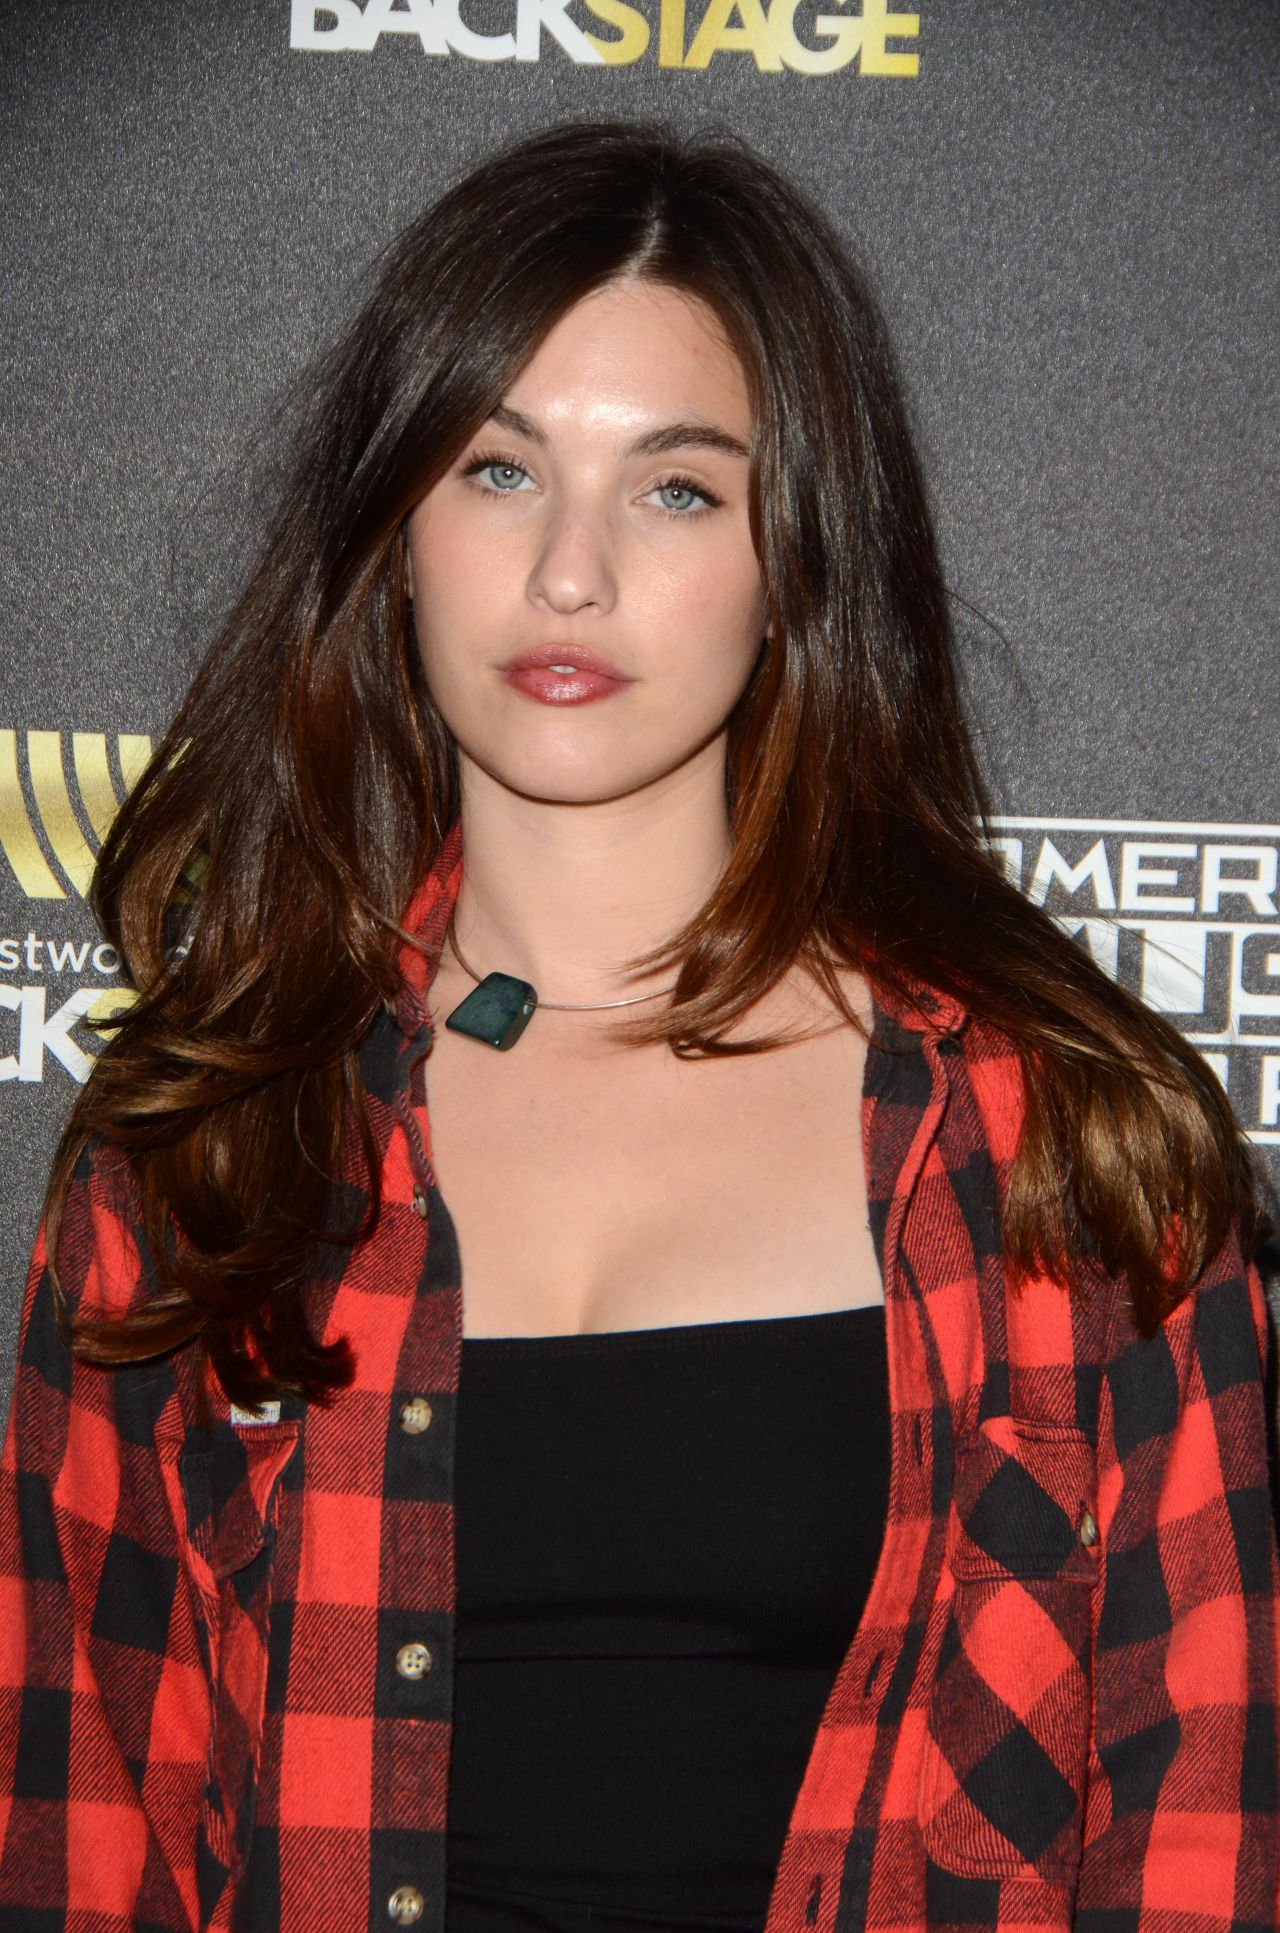 How Tall Is Rainey Qualley - Bing images Megan Fox Height